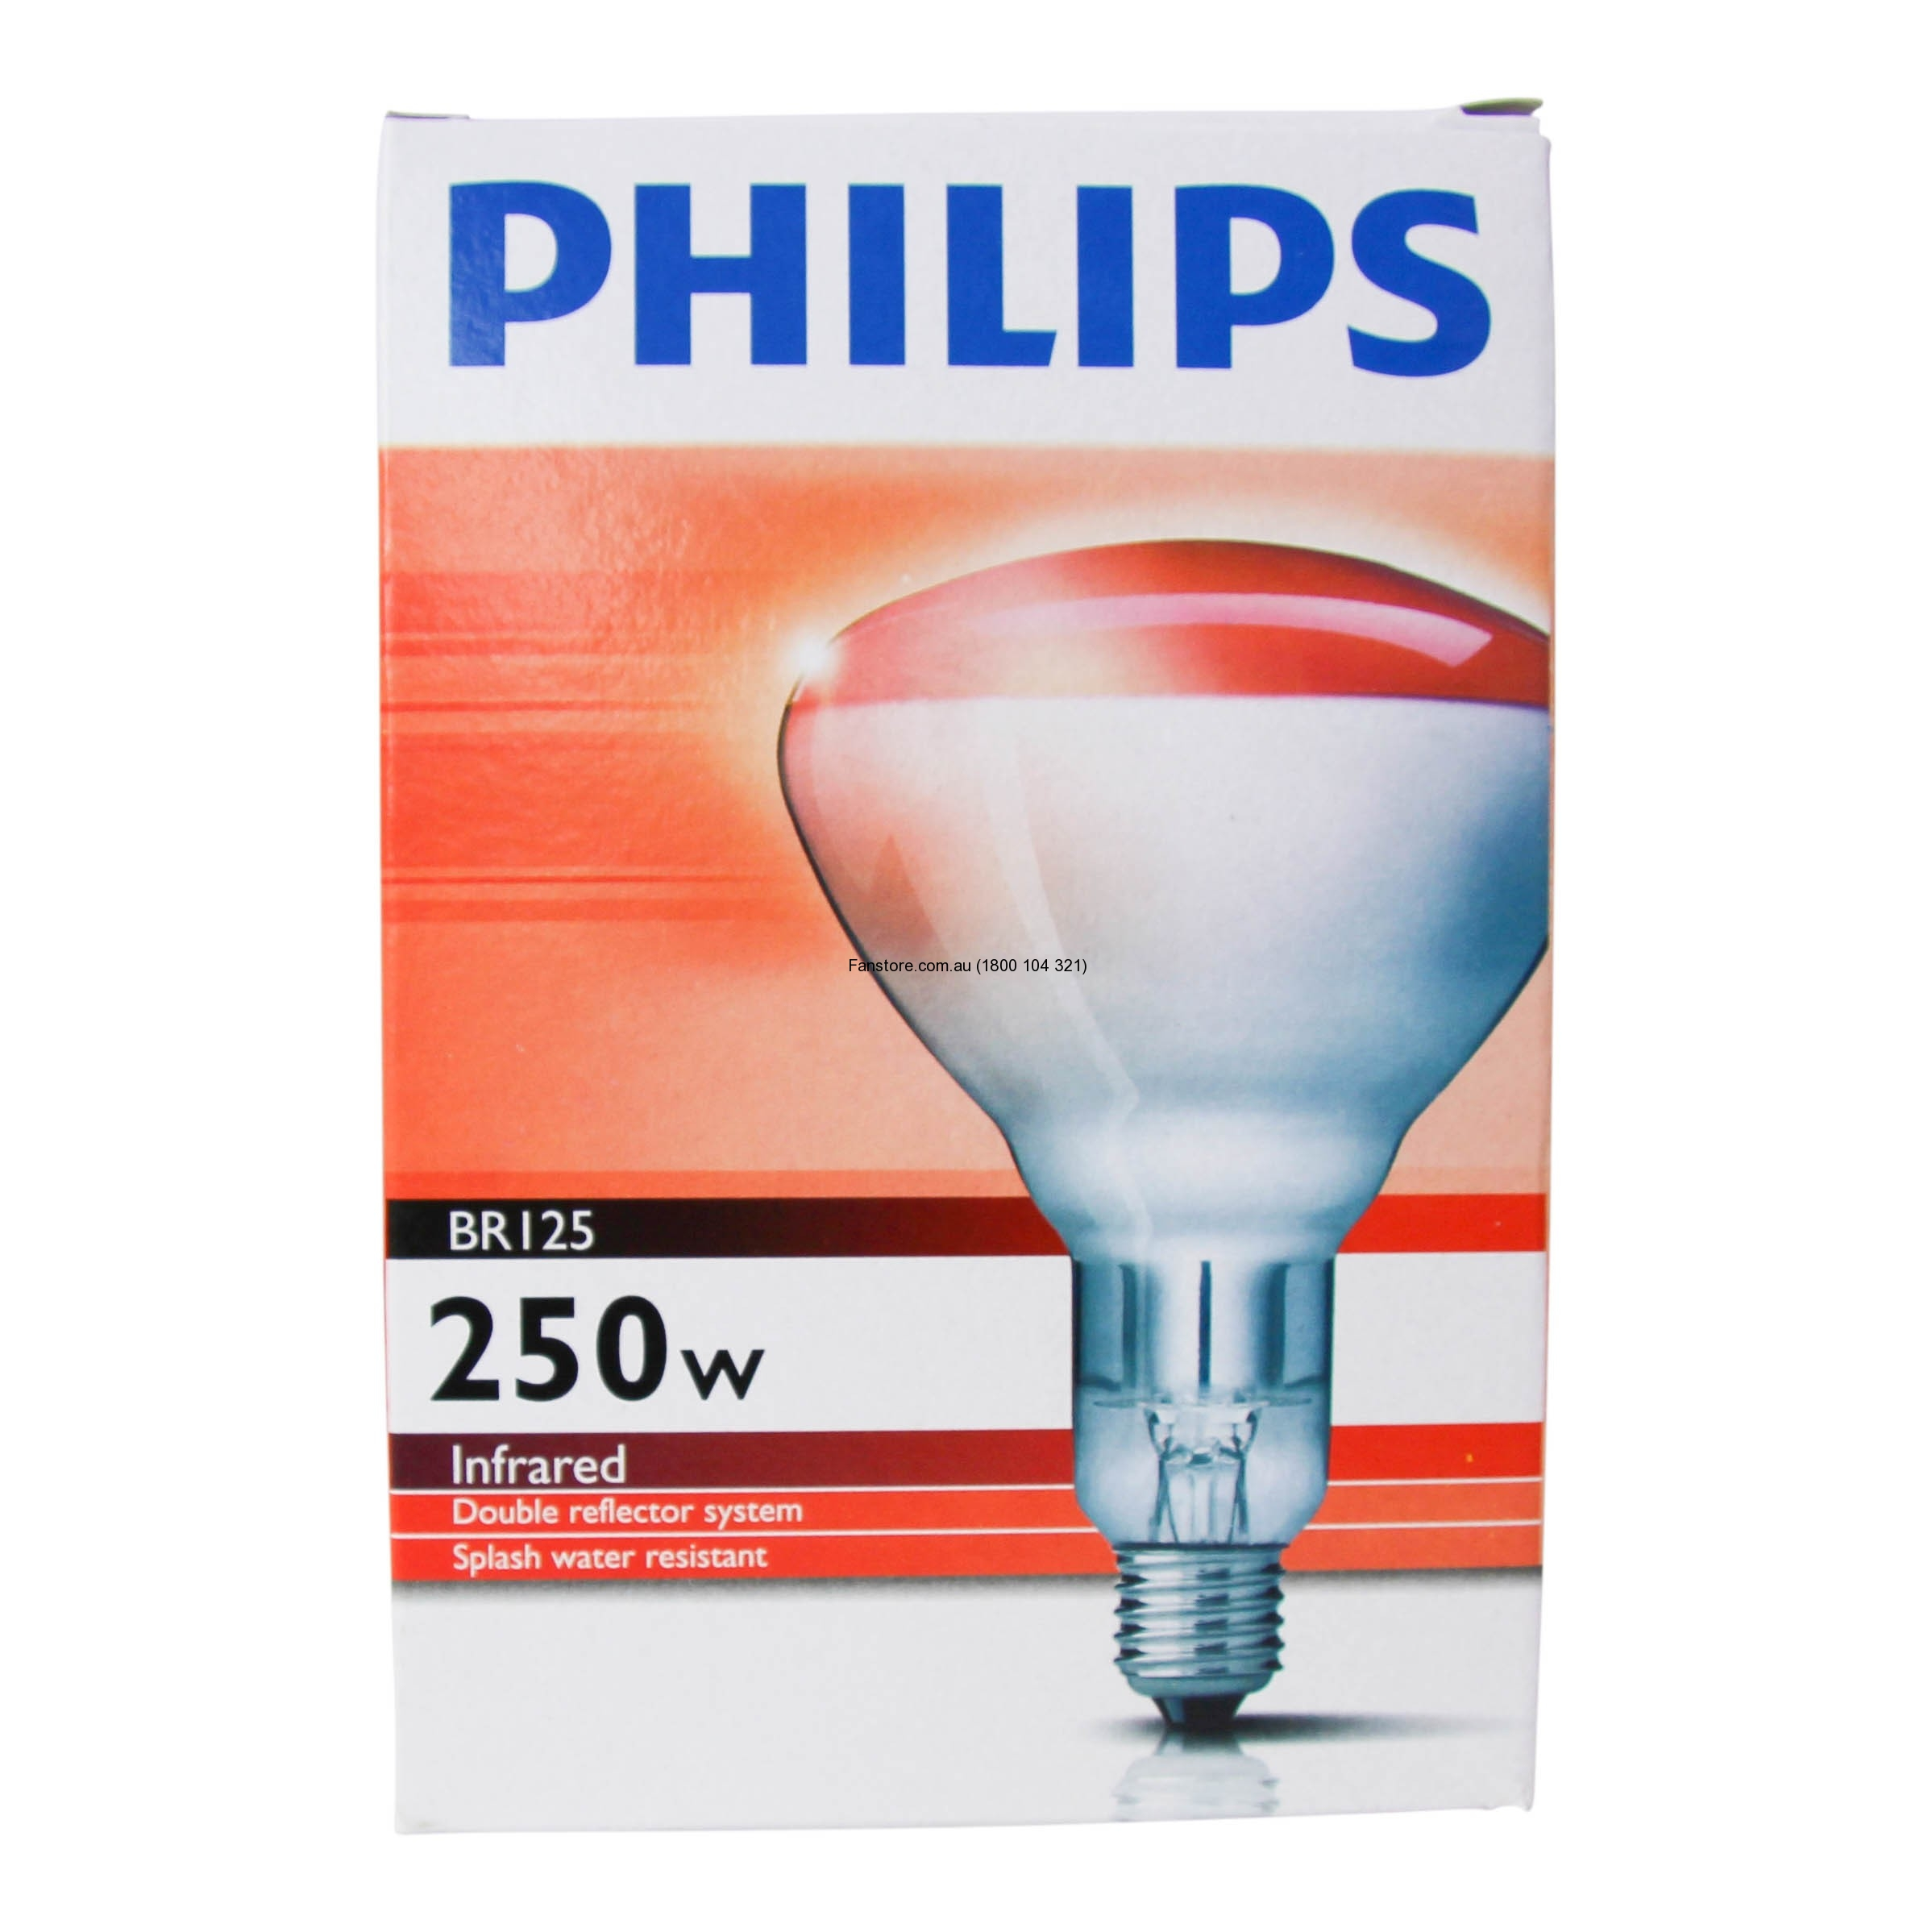 Philips 250 Infrared